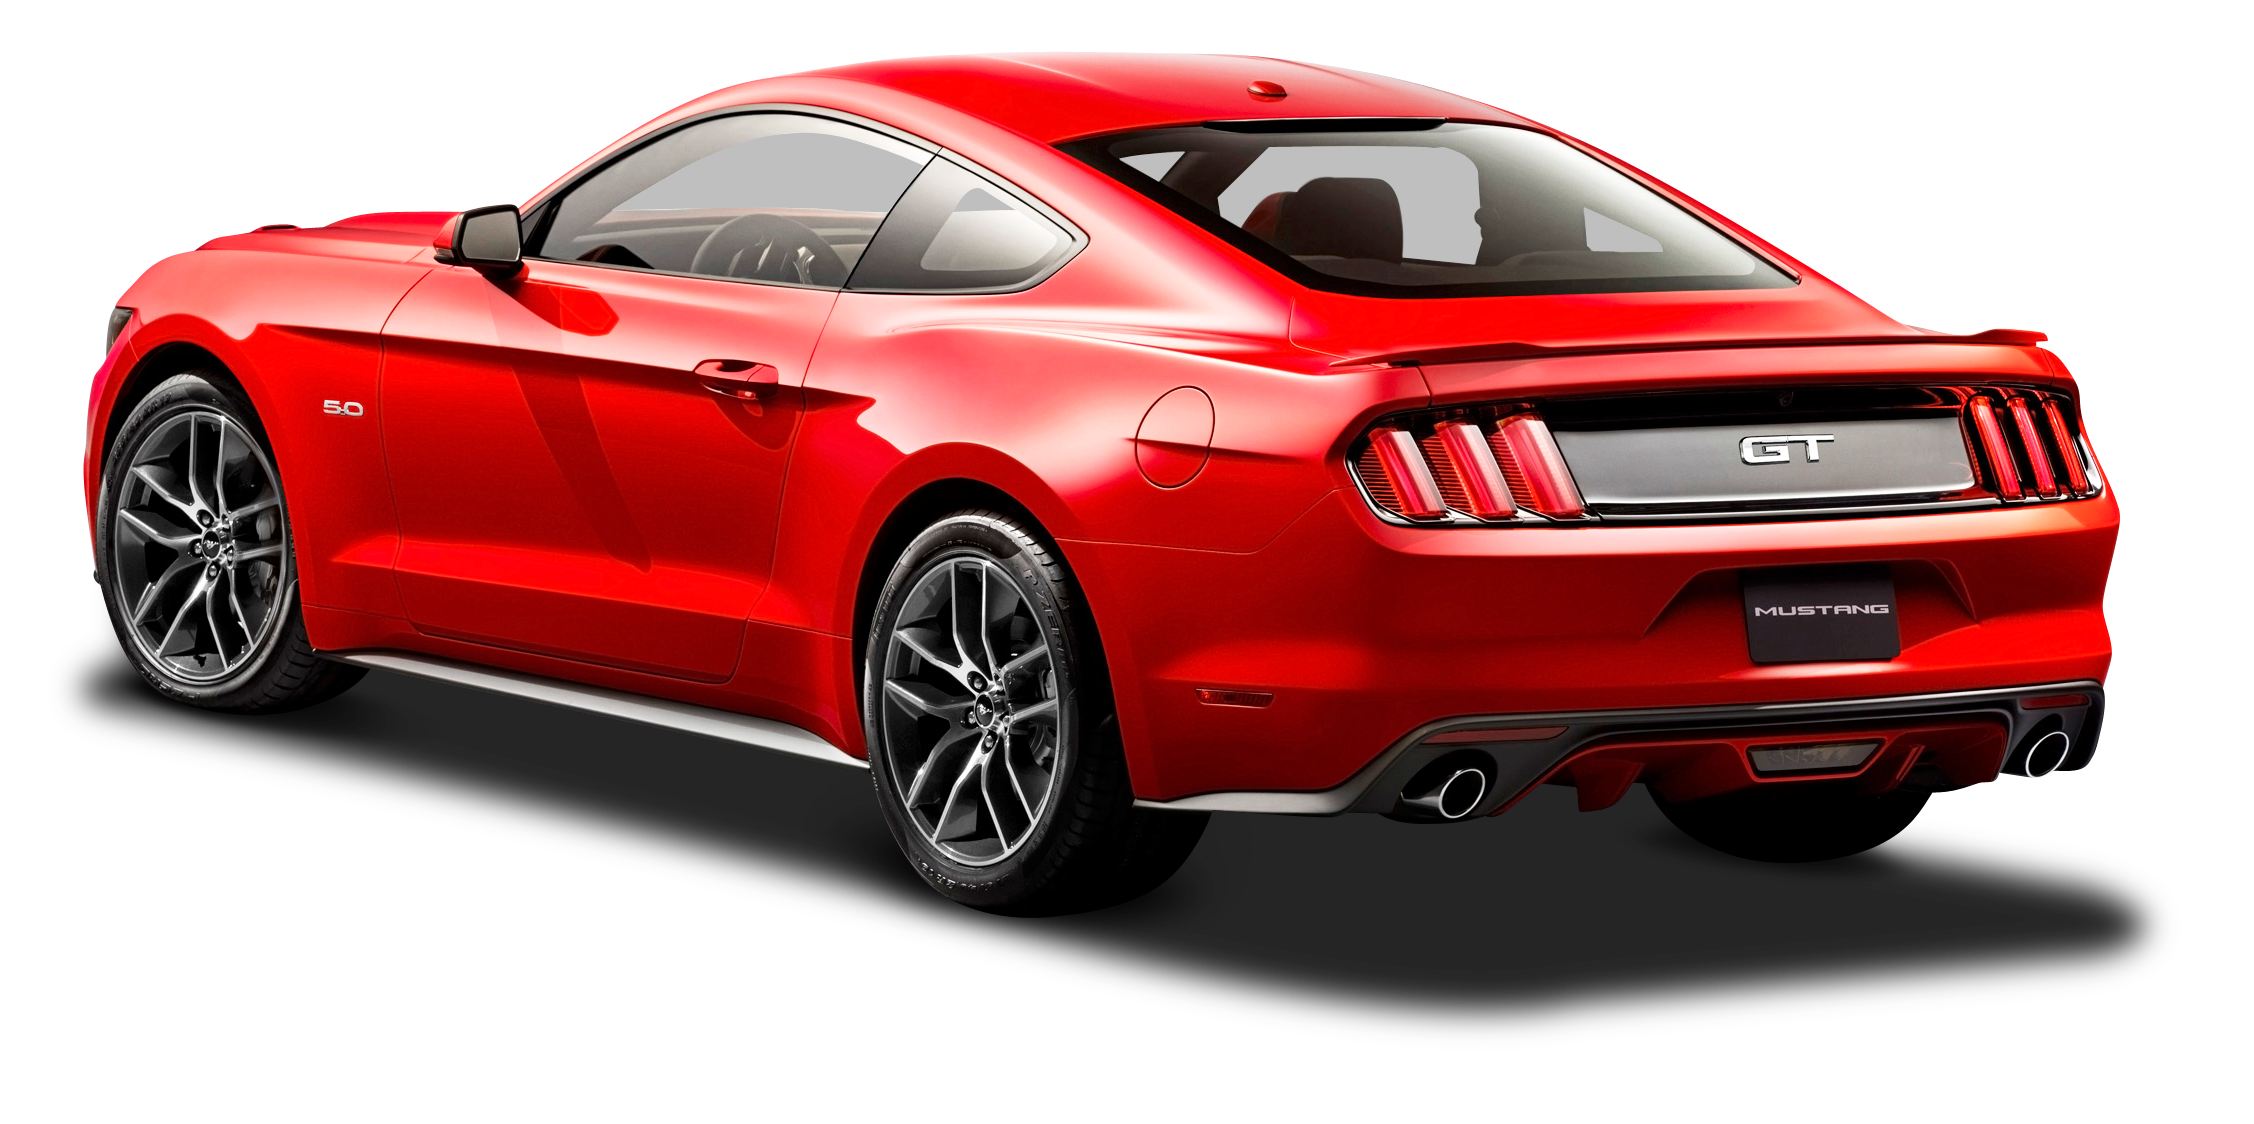 ford mustang red car back side png image pngpix #9293